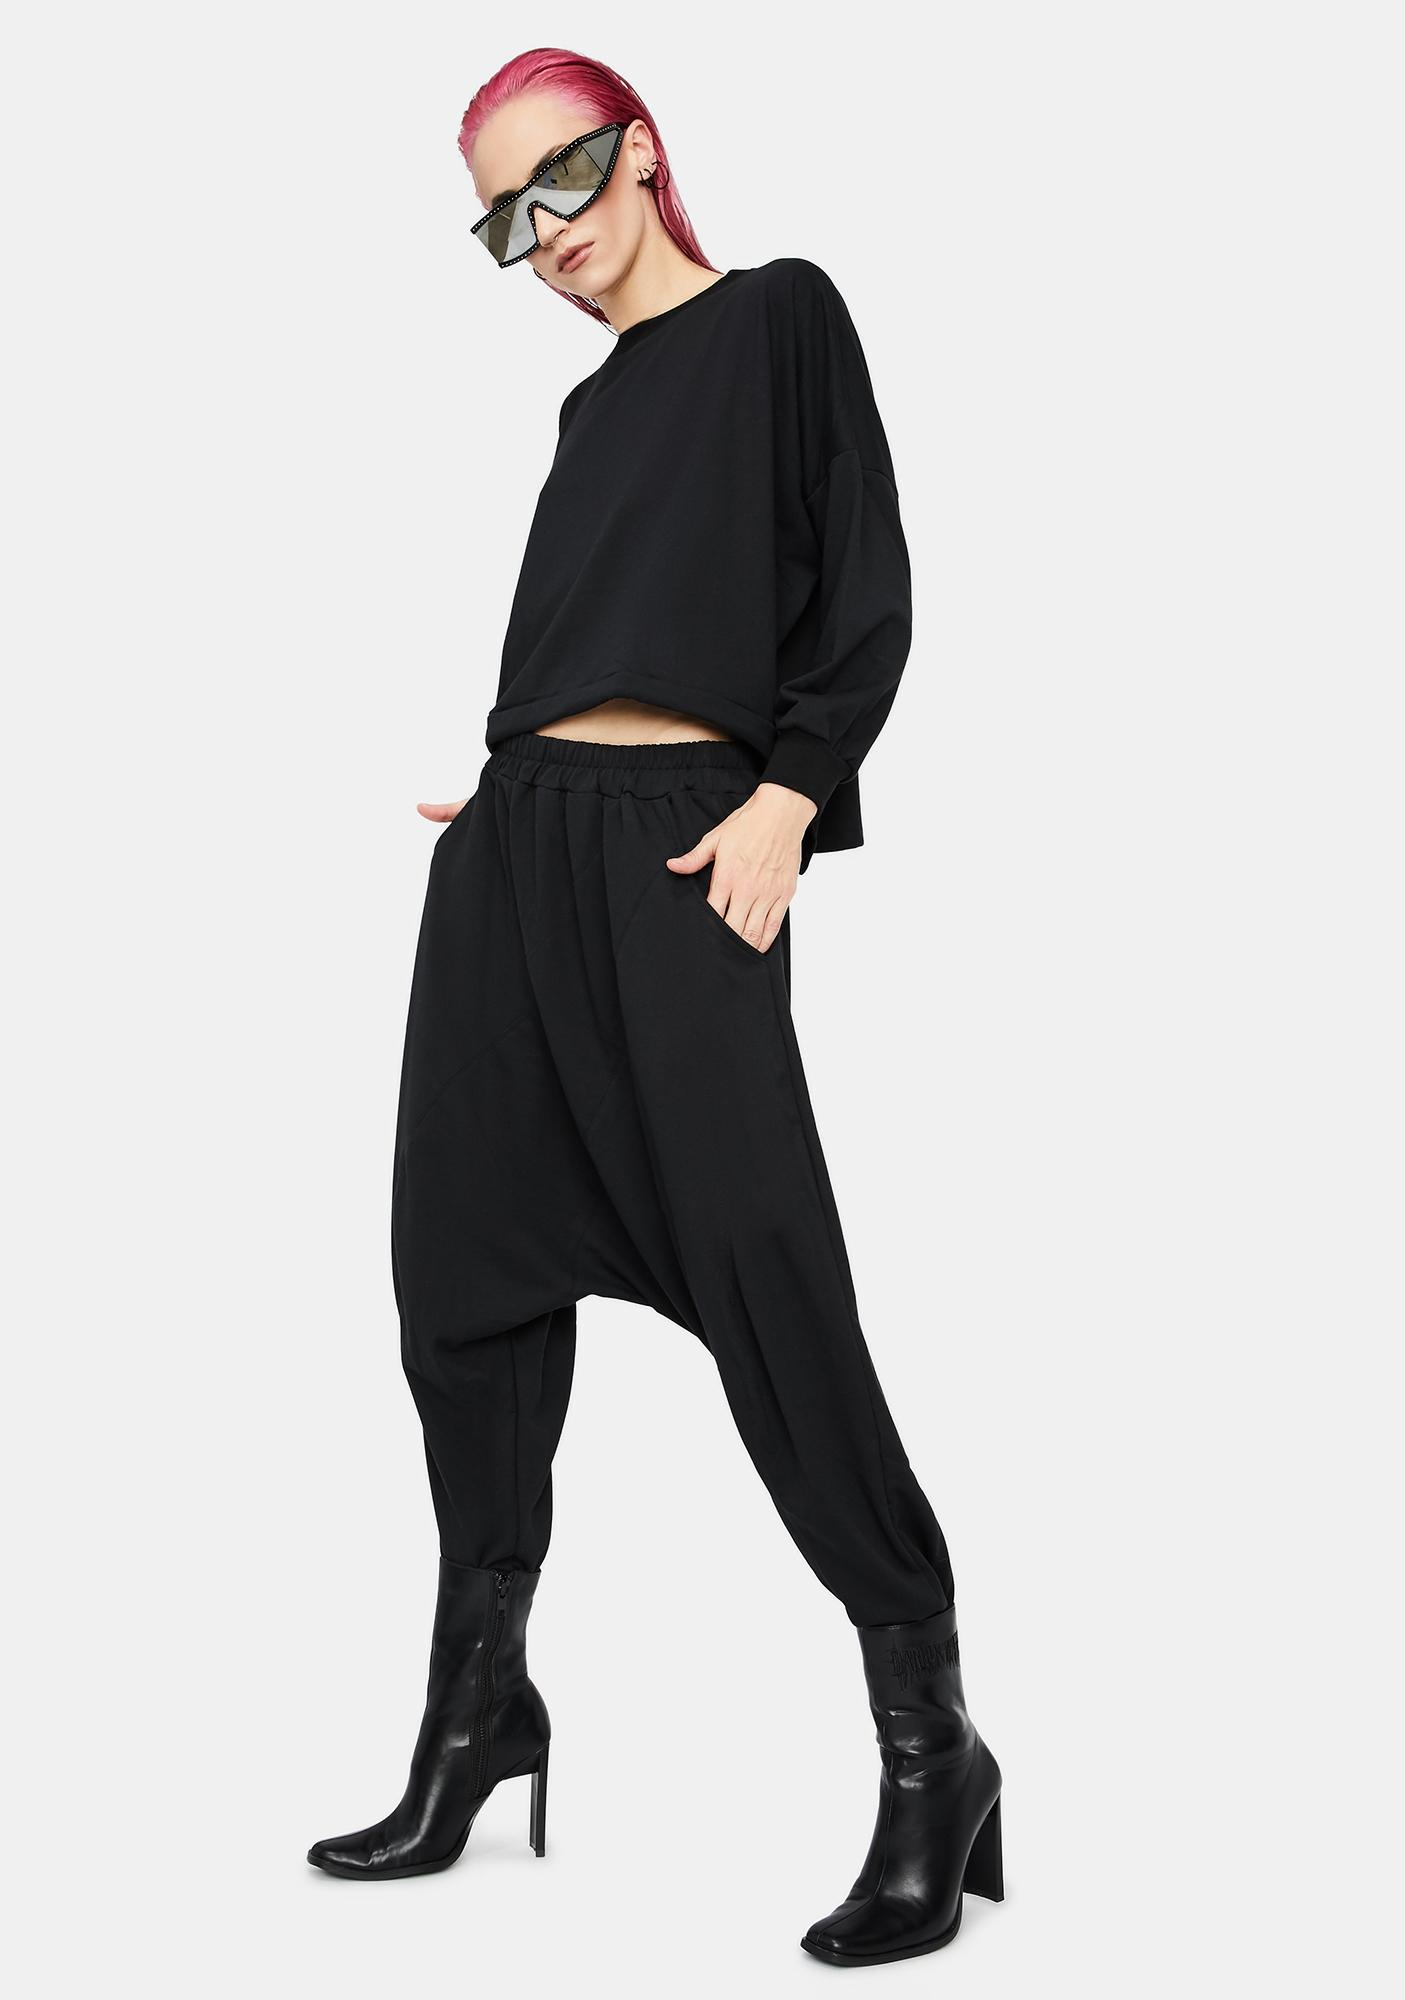 MNML Darkest Soul Drop Crotch Sweatpants